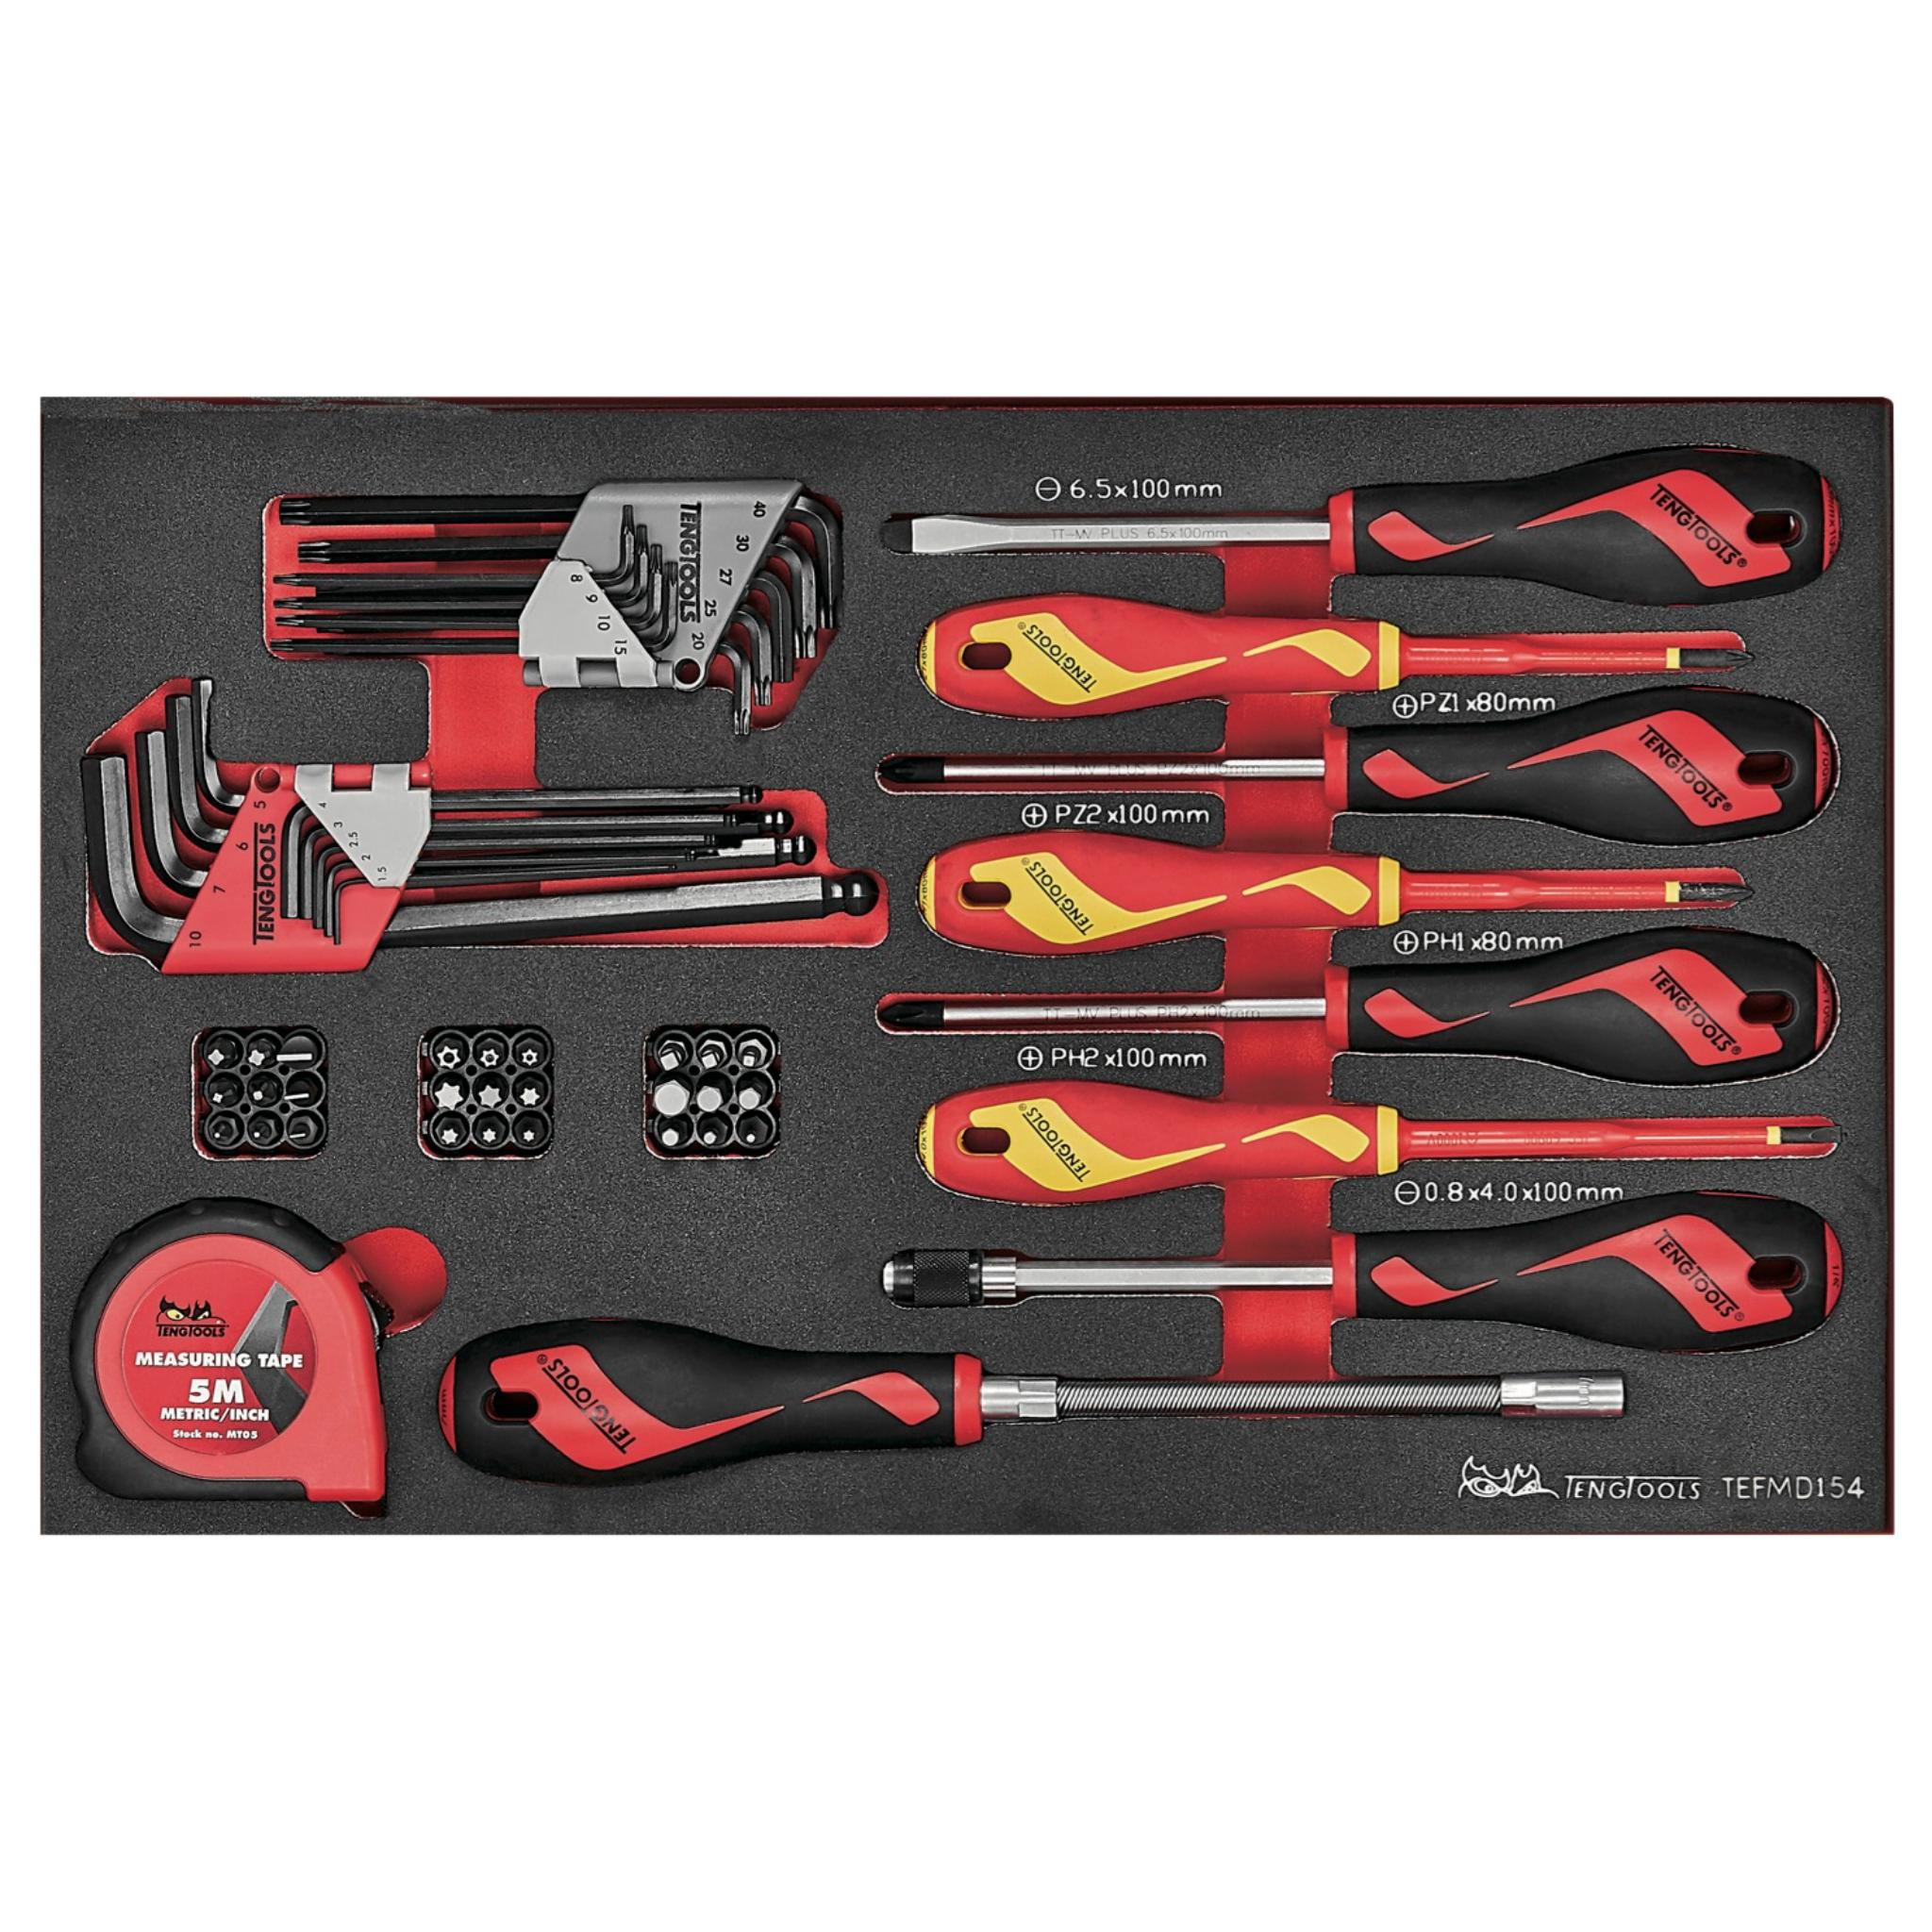 Teng Tools 54 Piece Mixed Screwdriver, Hex/TX Key, Bit, Quick Chuck Driver & Tape Set - TEFMDI54